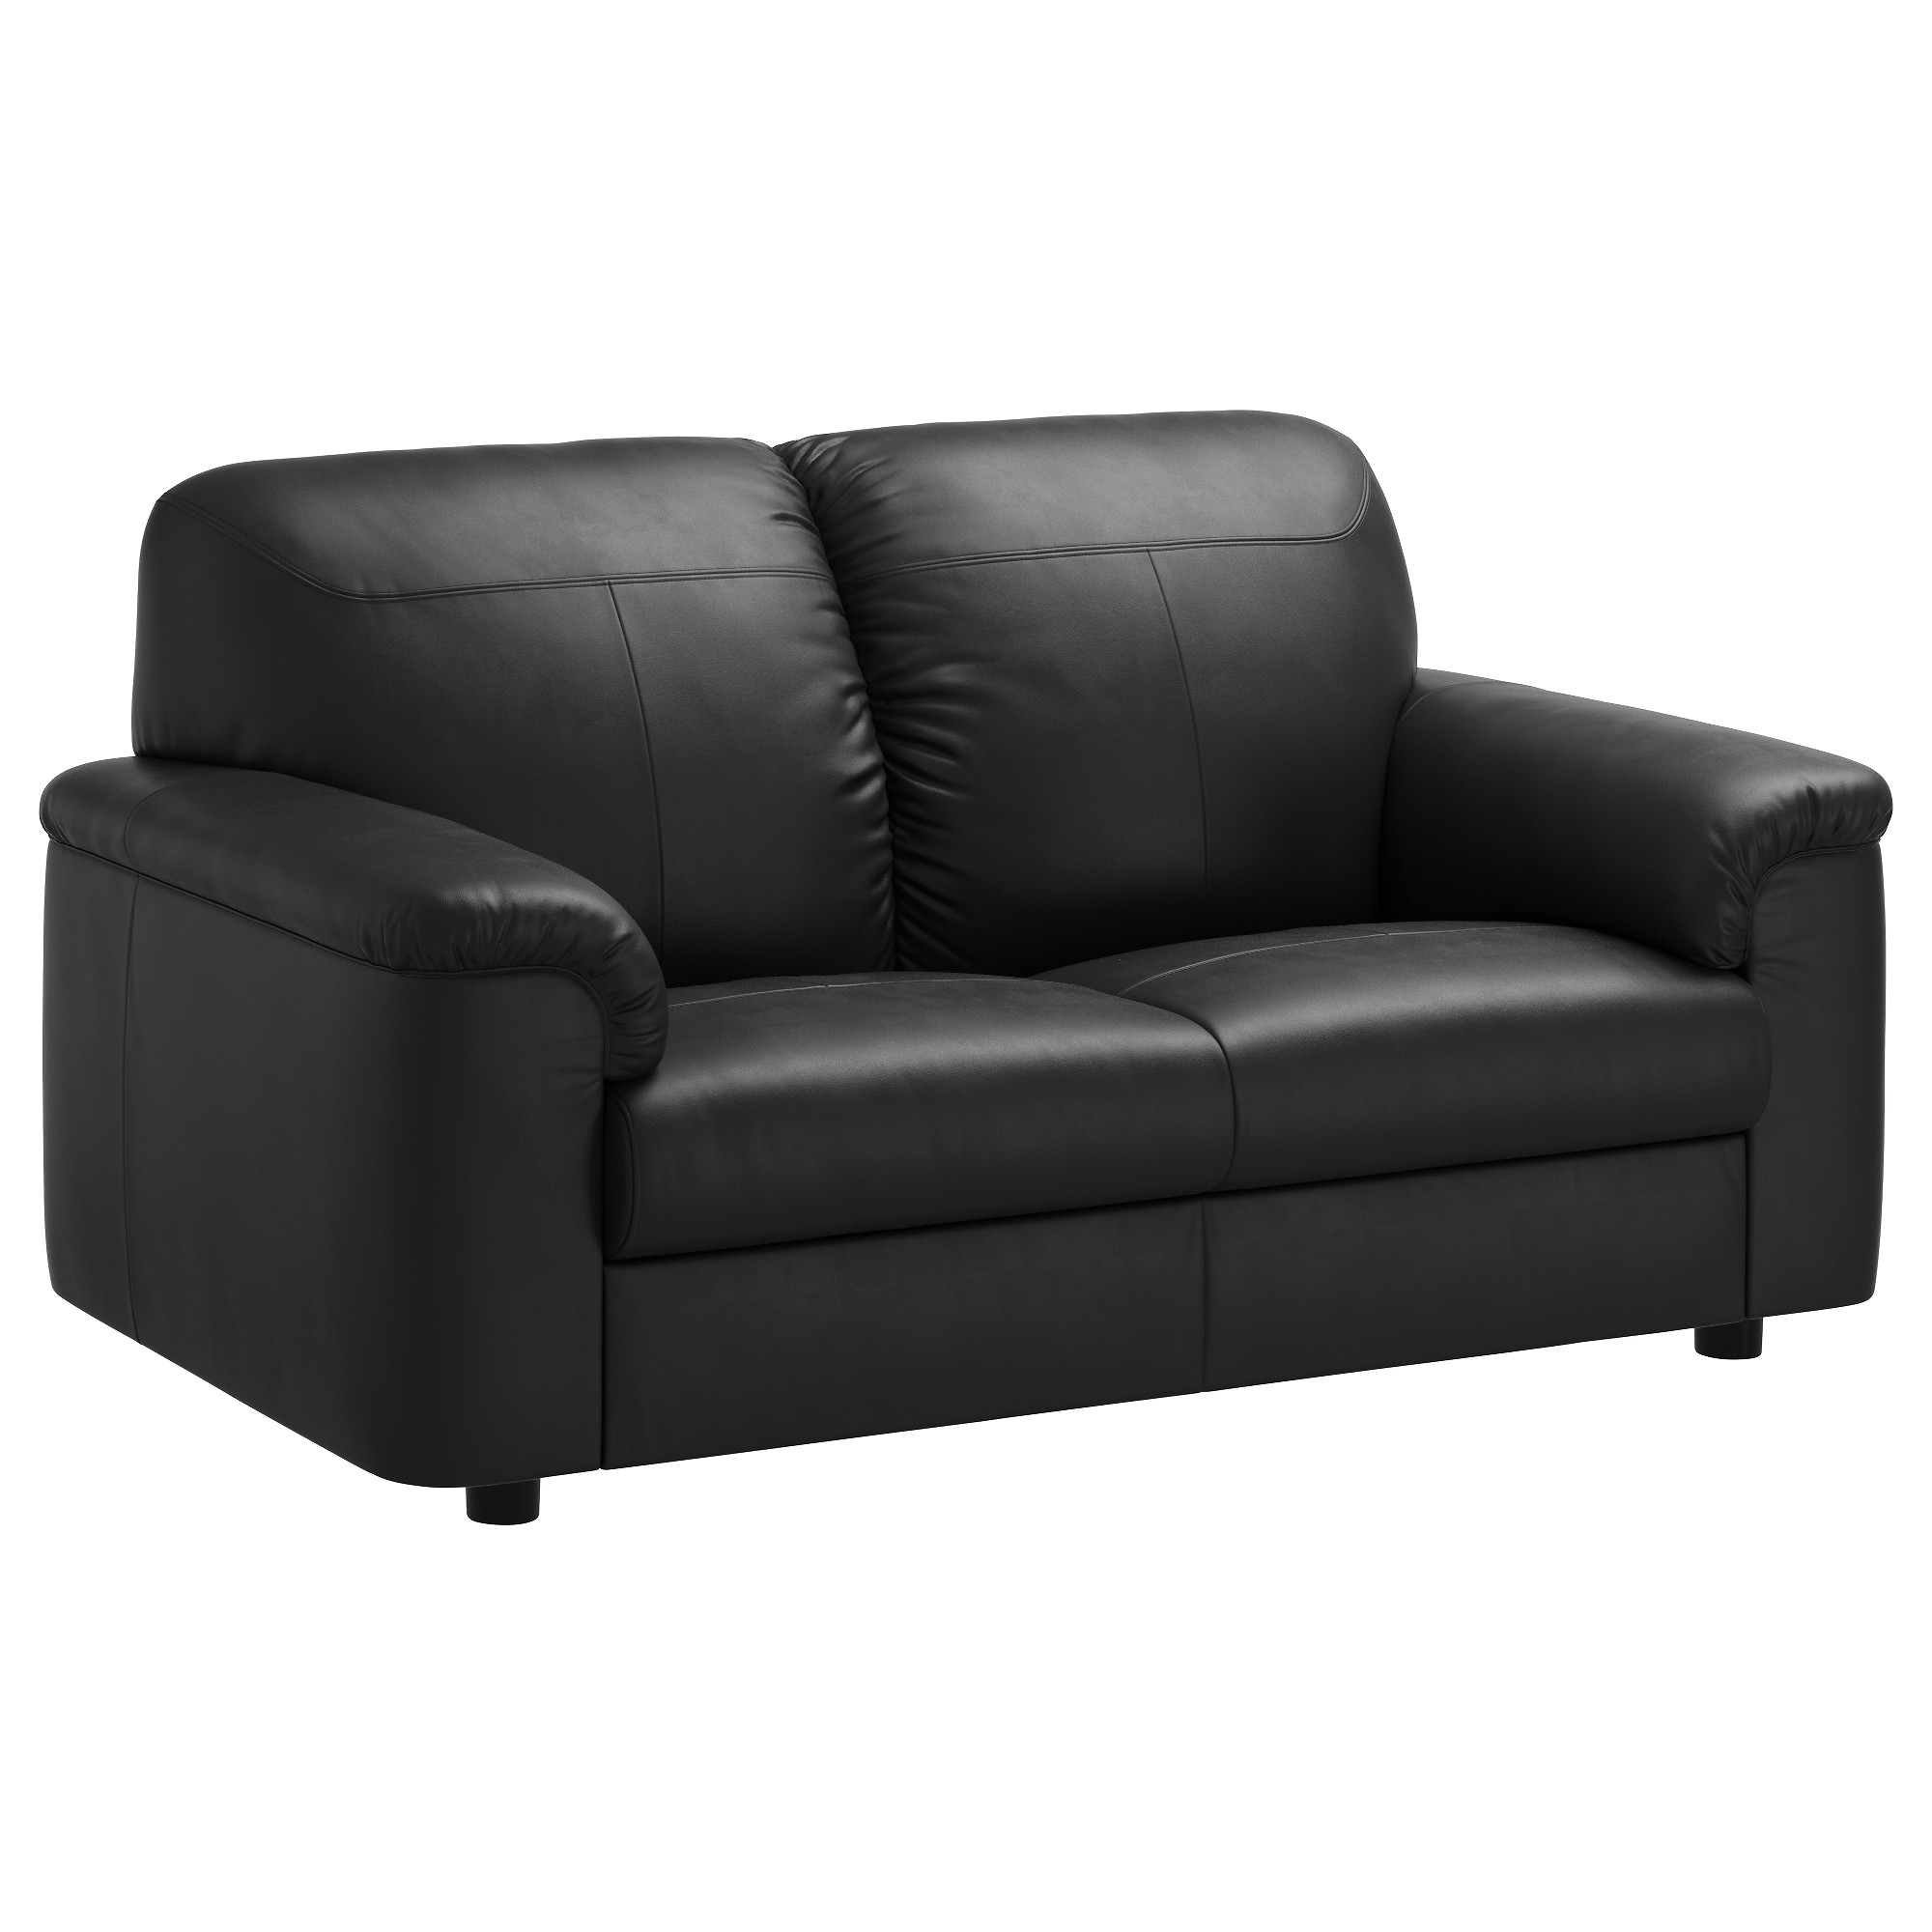 Explore Gallery Of Ikea Two Seater Sofas Showing 19 Of 20 Photos